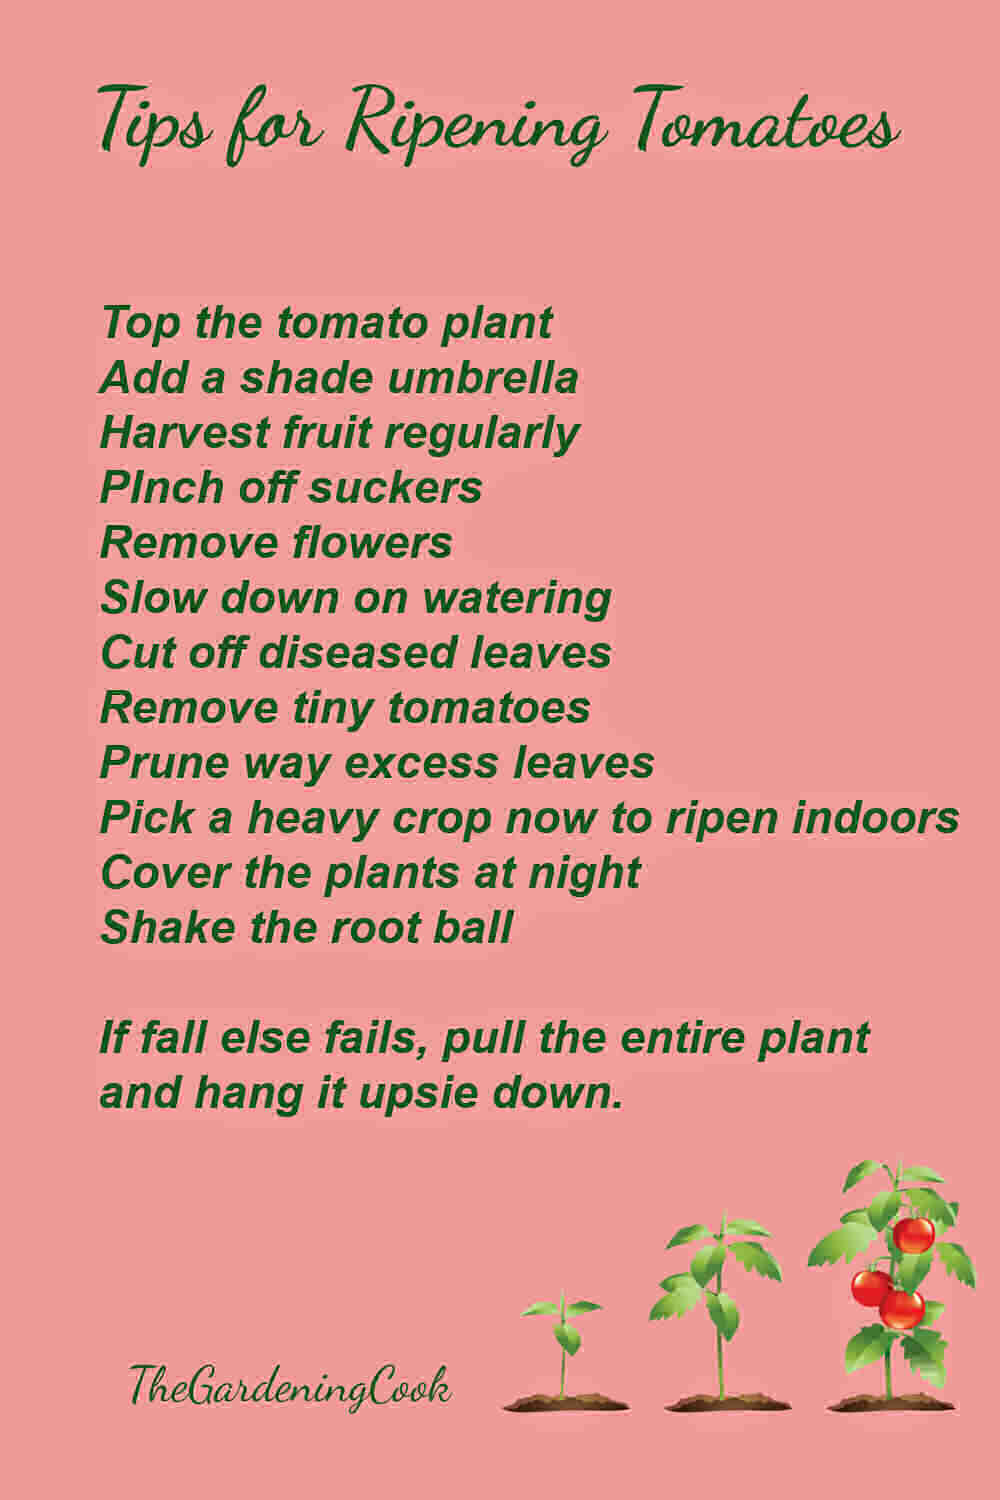 Printable with tips for ripening tomatoes on the vine.